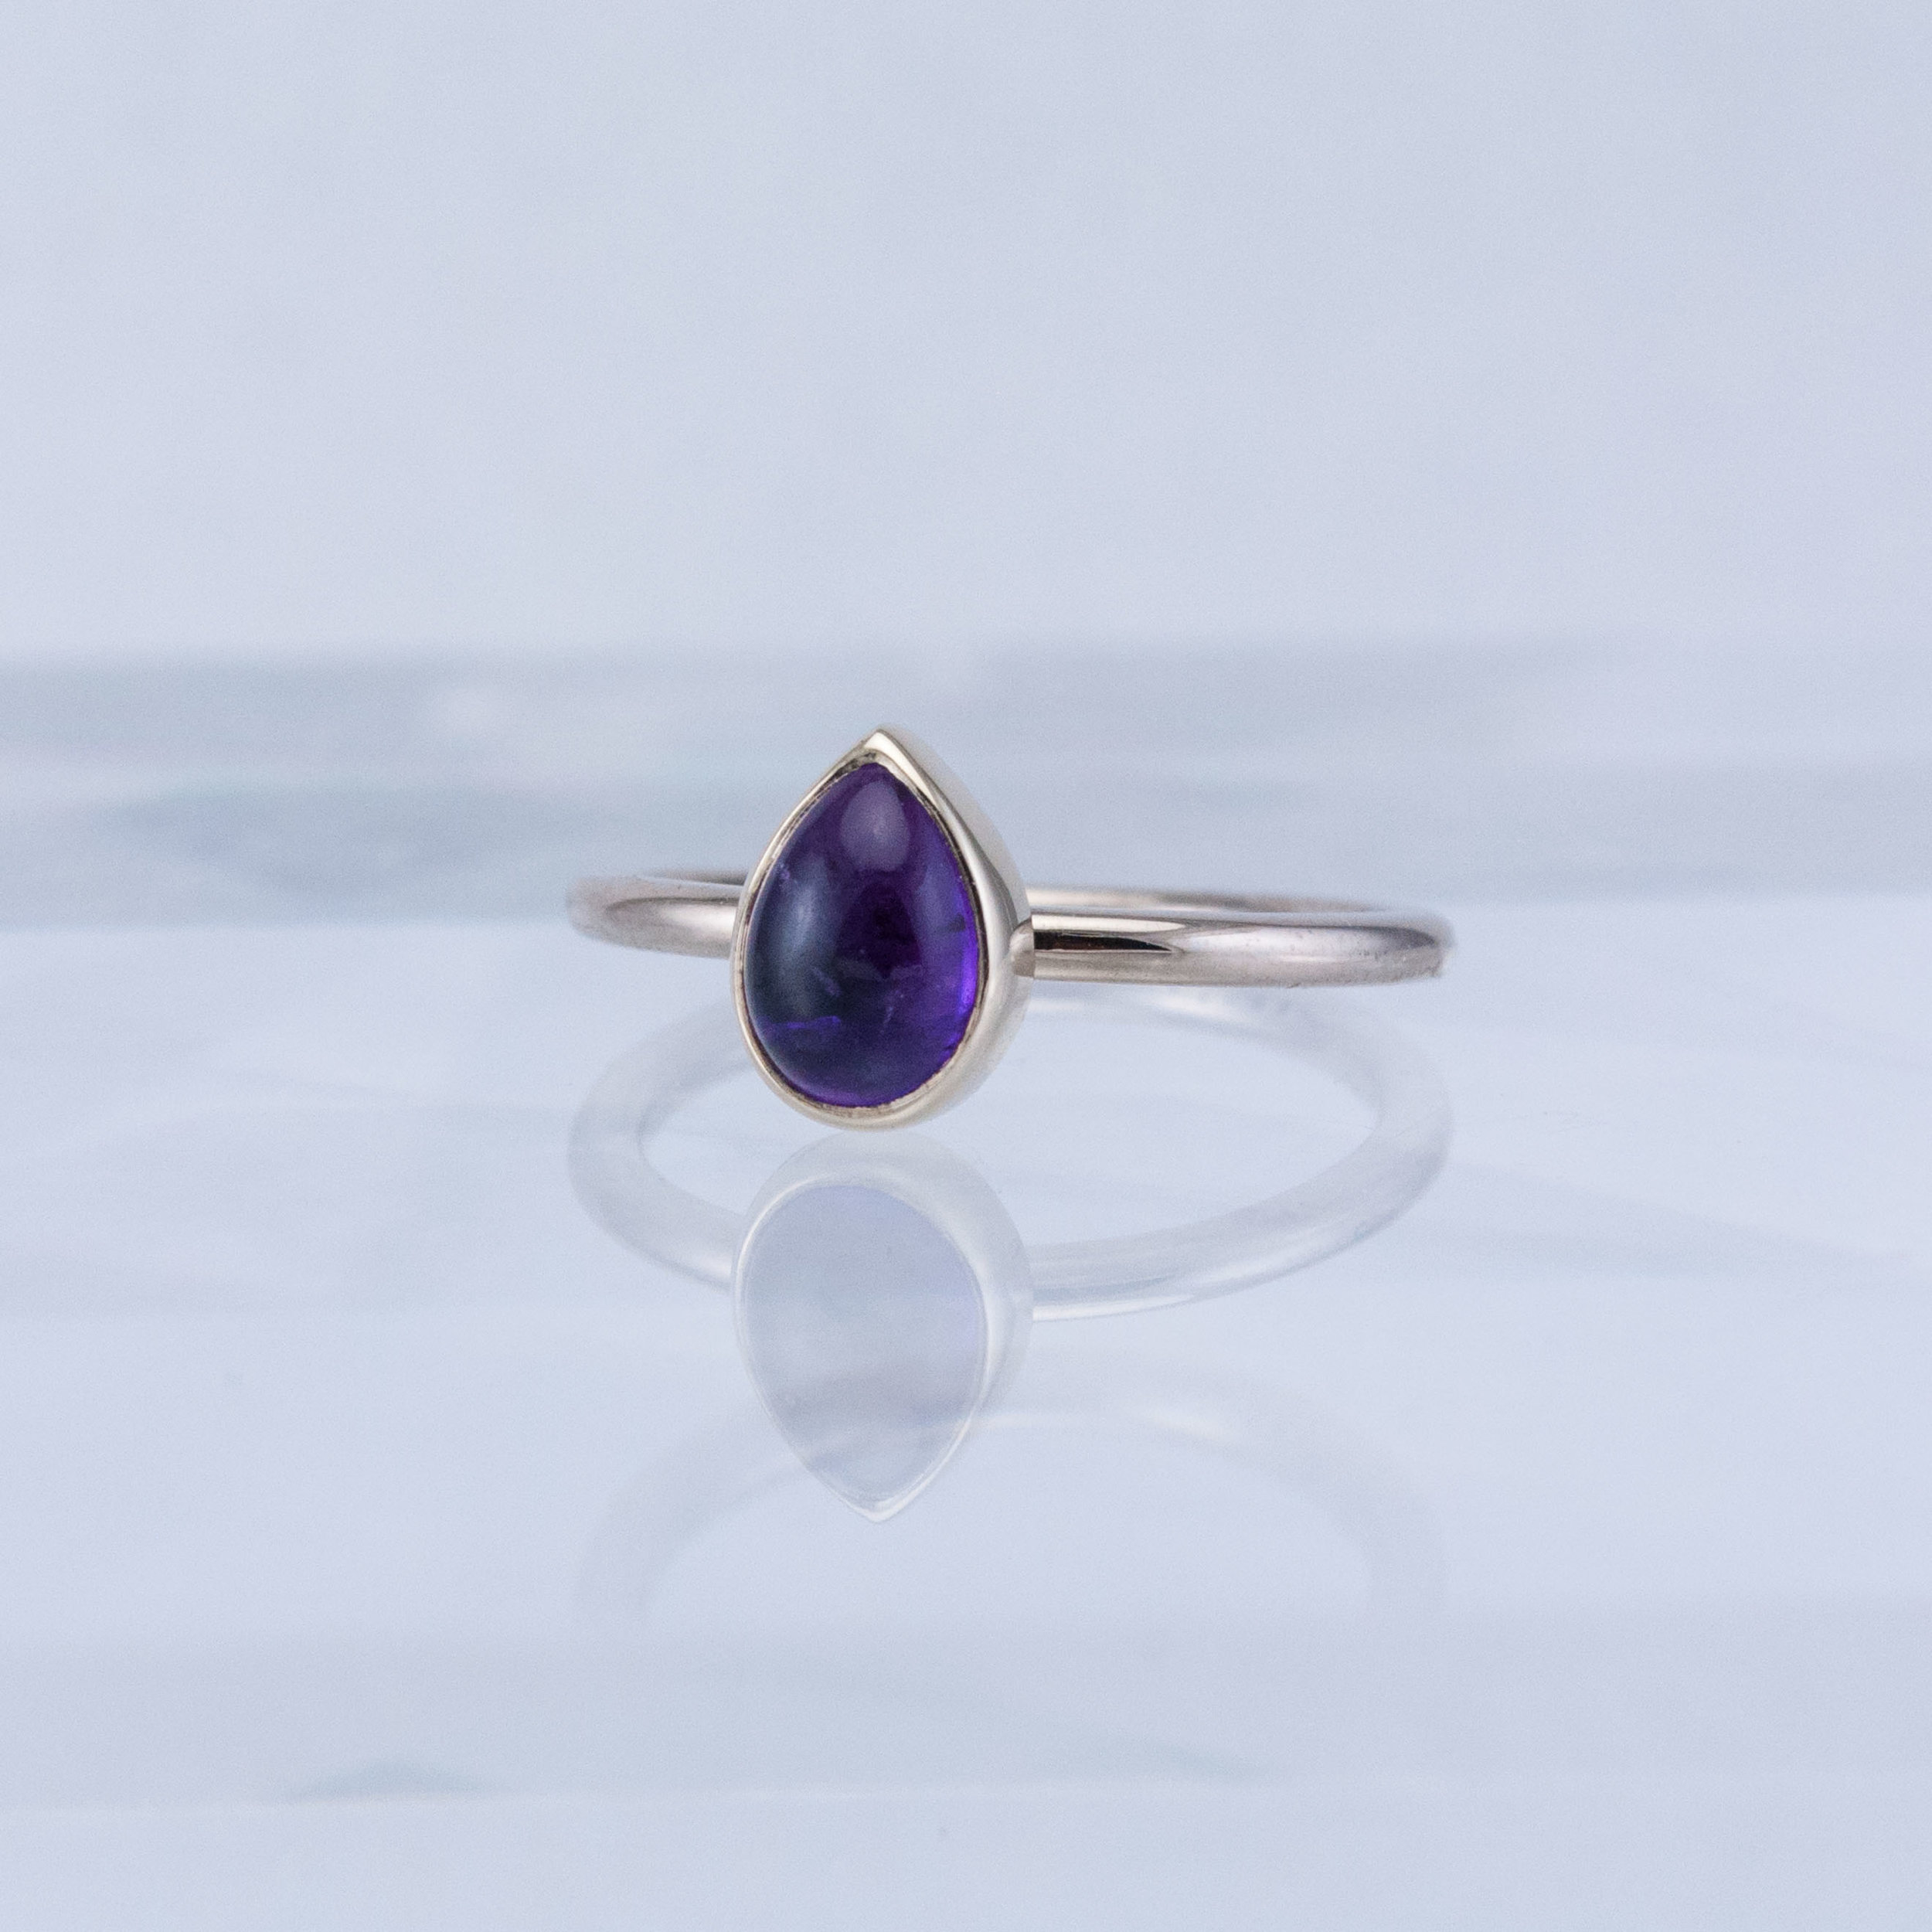 Moonbeam Stacking Ring with Amethyst Cabochon